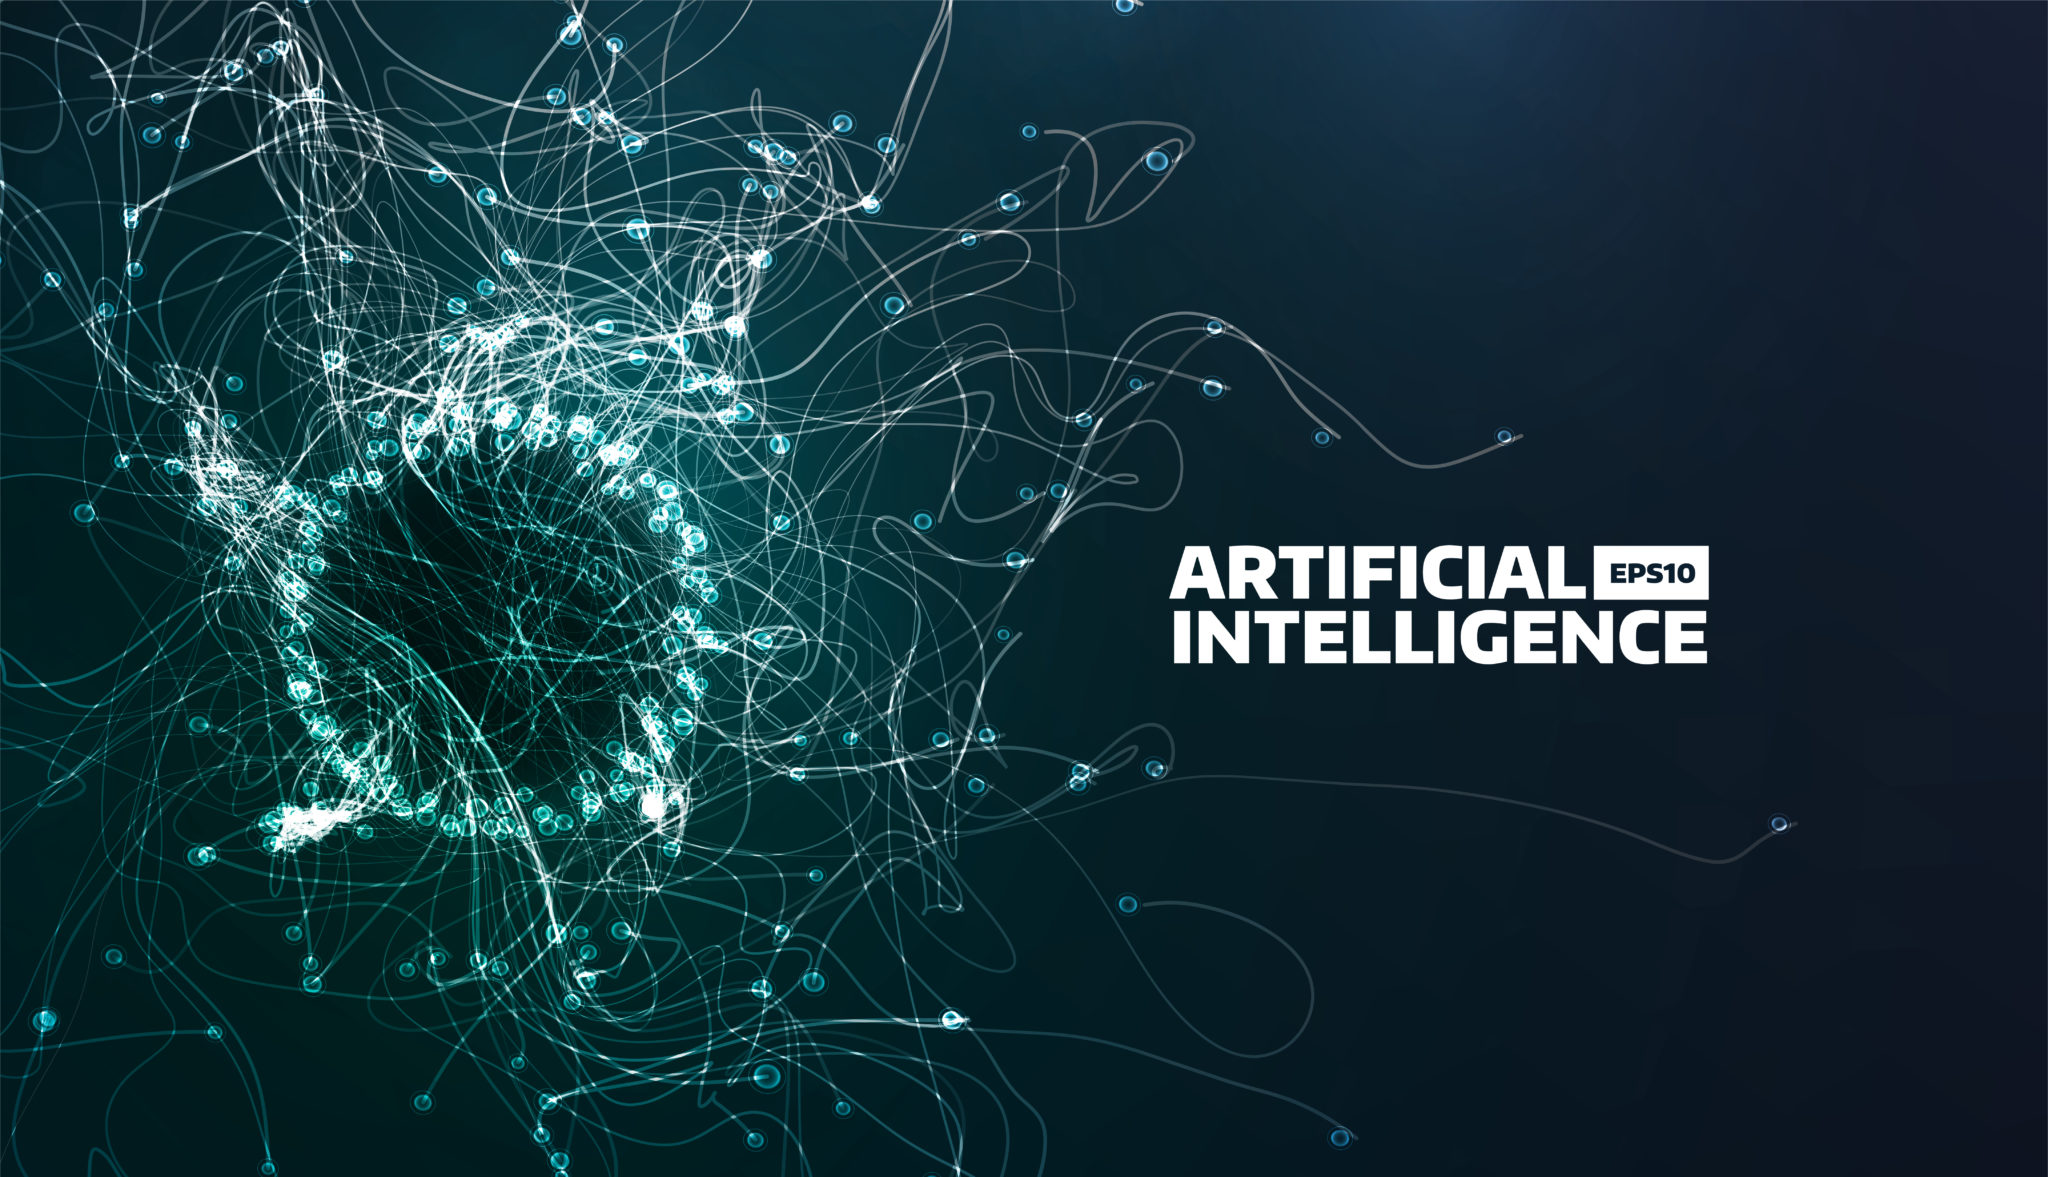 Artificial Intelligence EPS10